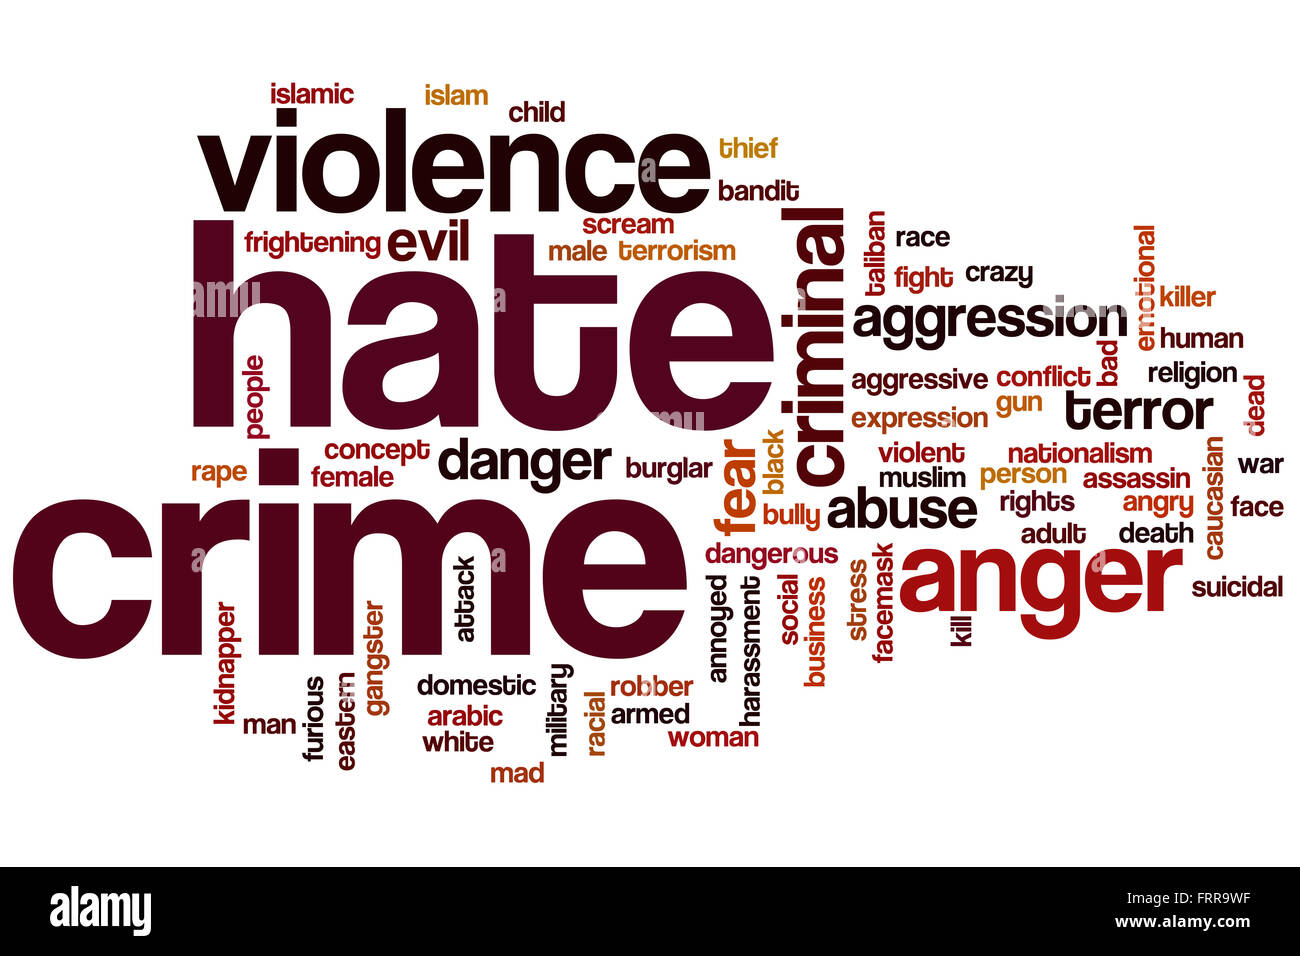 Hate crime word cloud concept - Stock Image